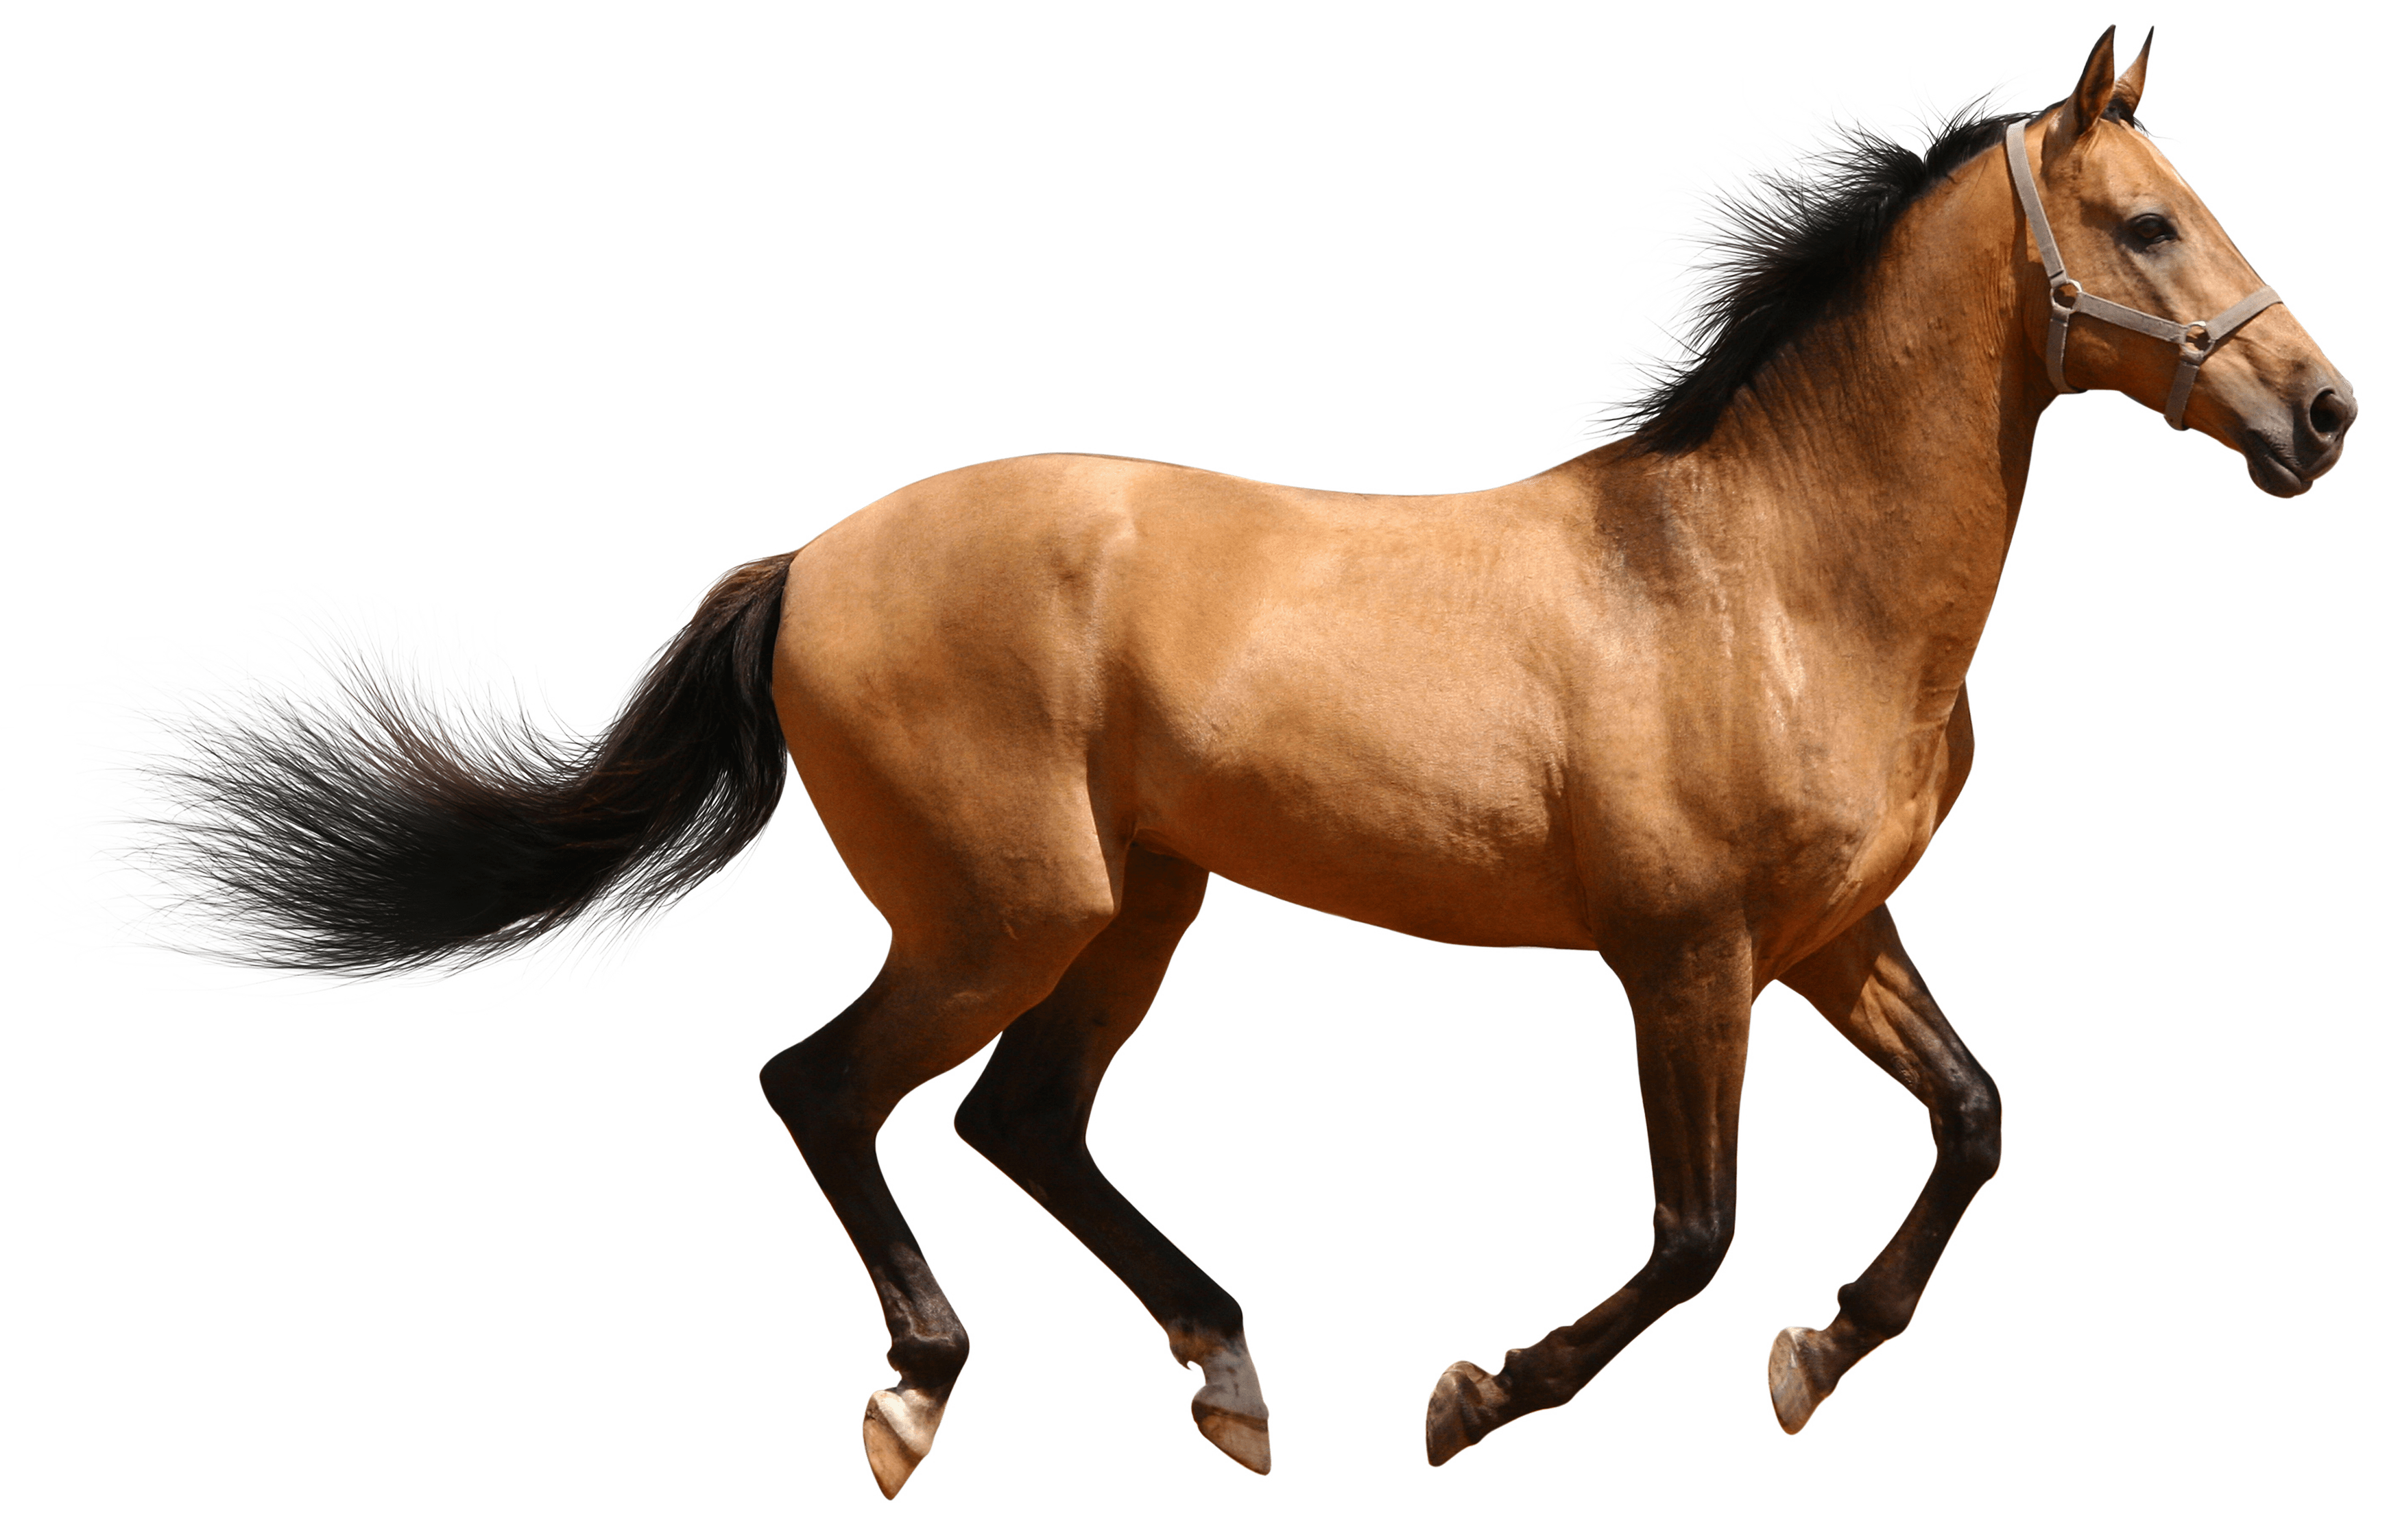 horse - google search | chelsea stewart i hope you love my stuff